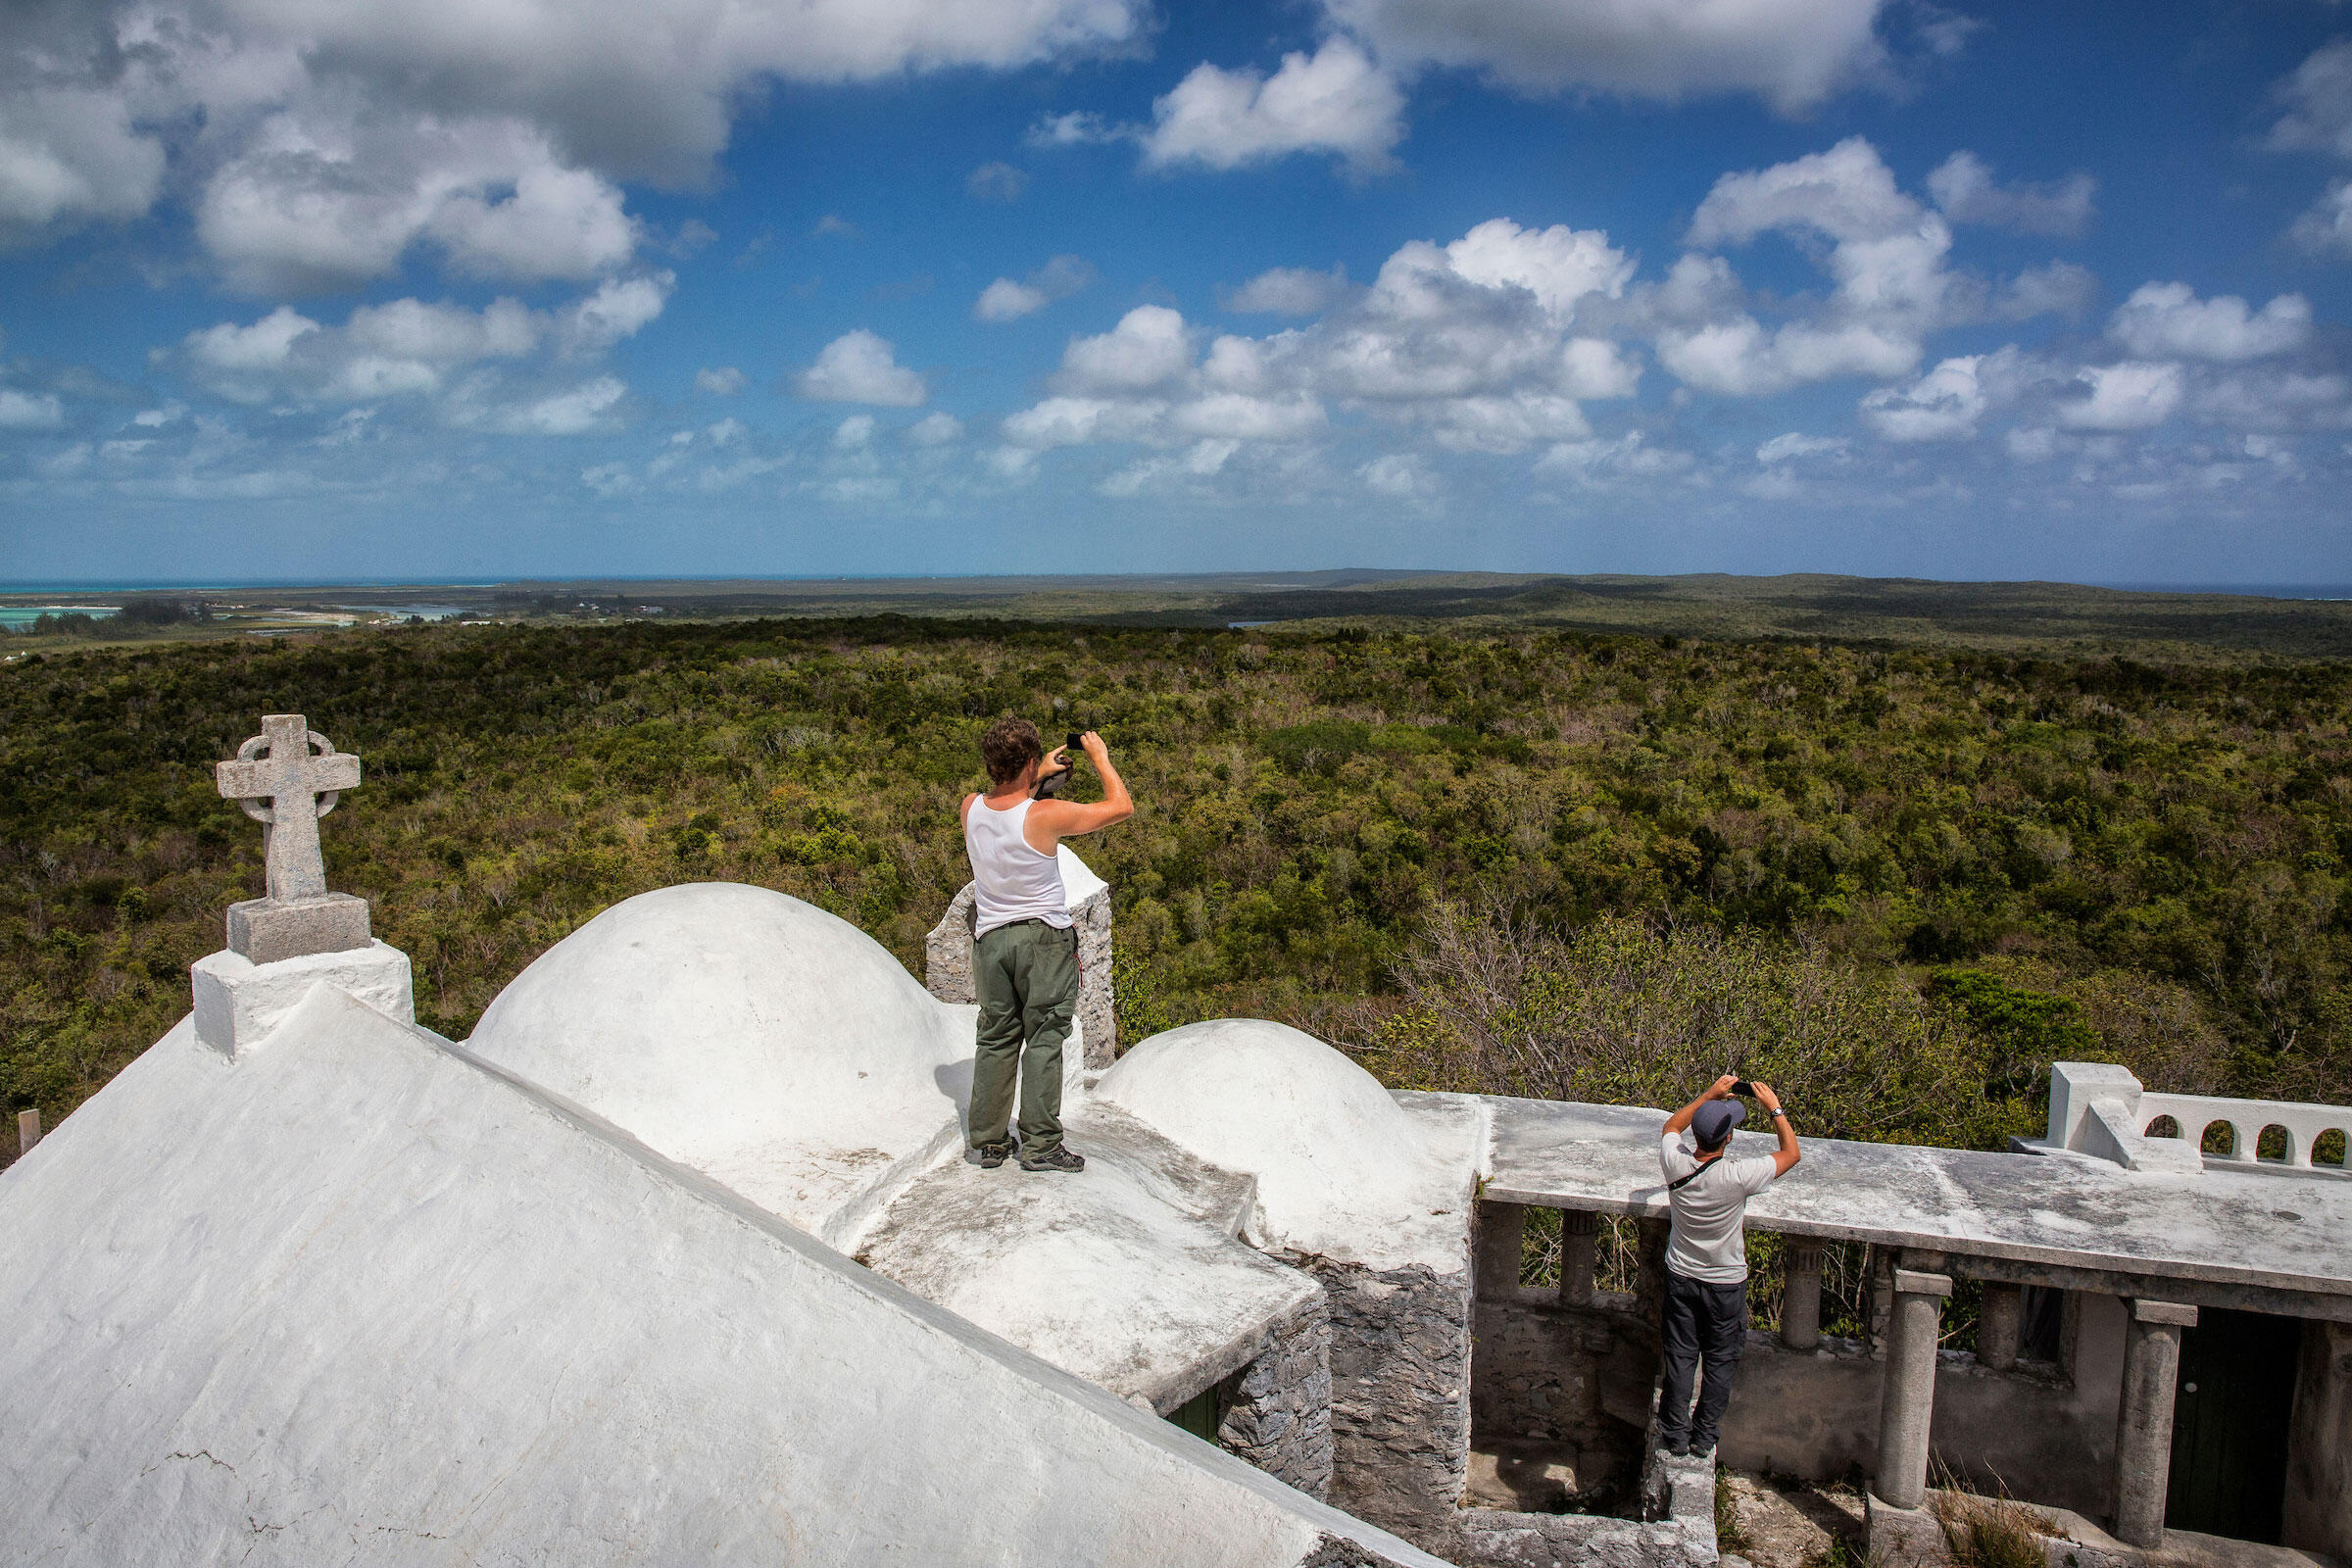 Cooper and Chris Fox take a break from evaluating Kirtland's wintering habitat to check out Mount Alvernia on Como Hill—the highest point in the Bahamas. Karine Aigner